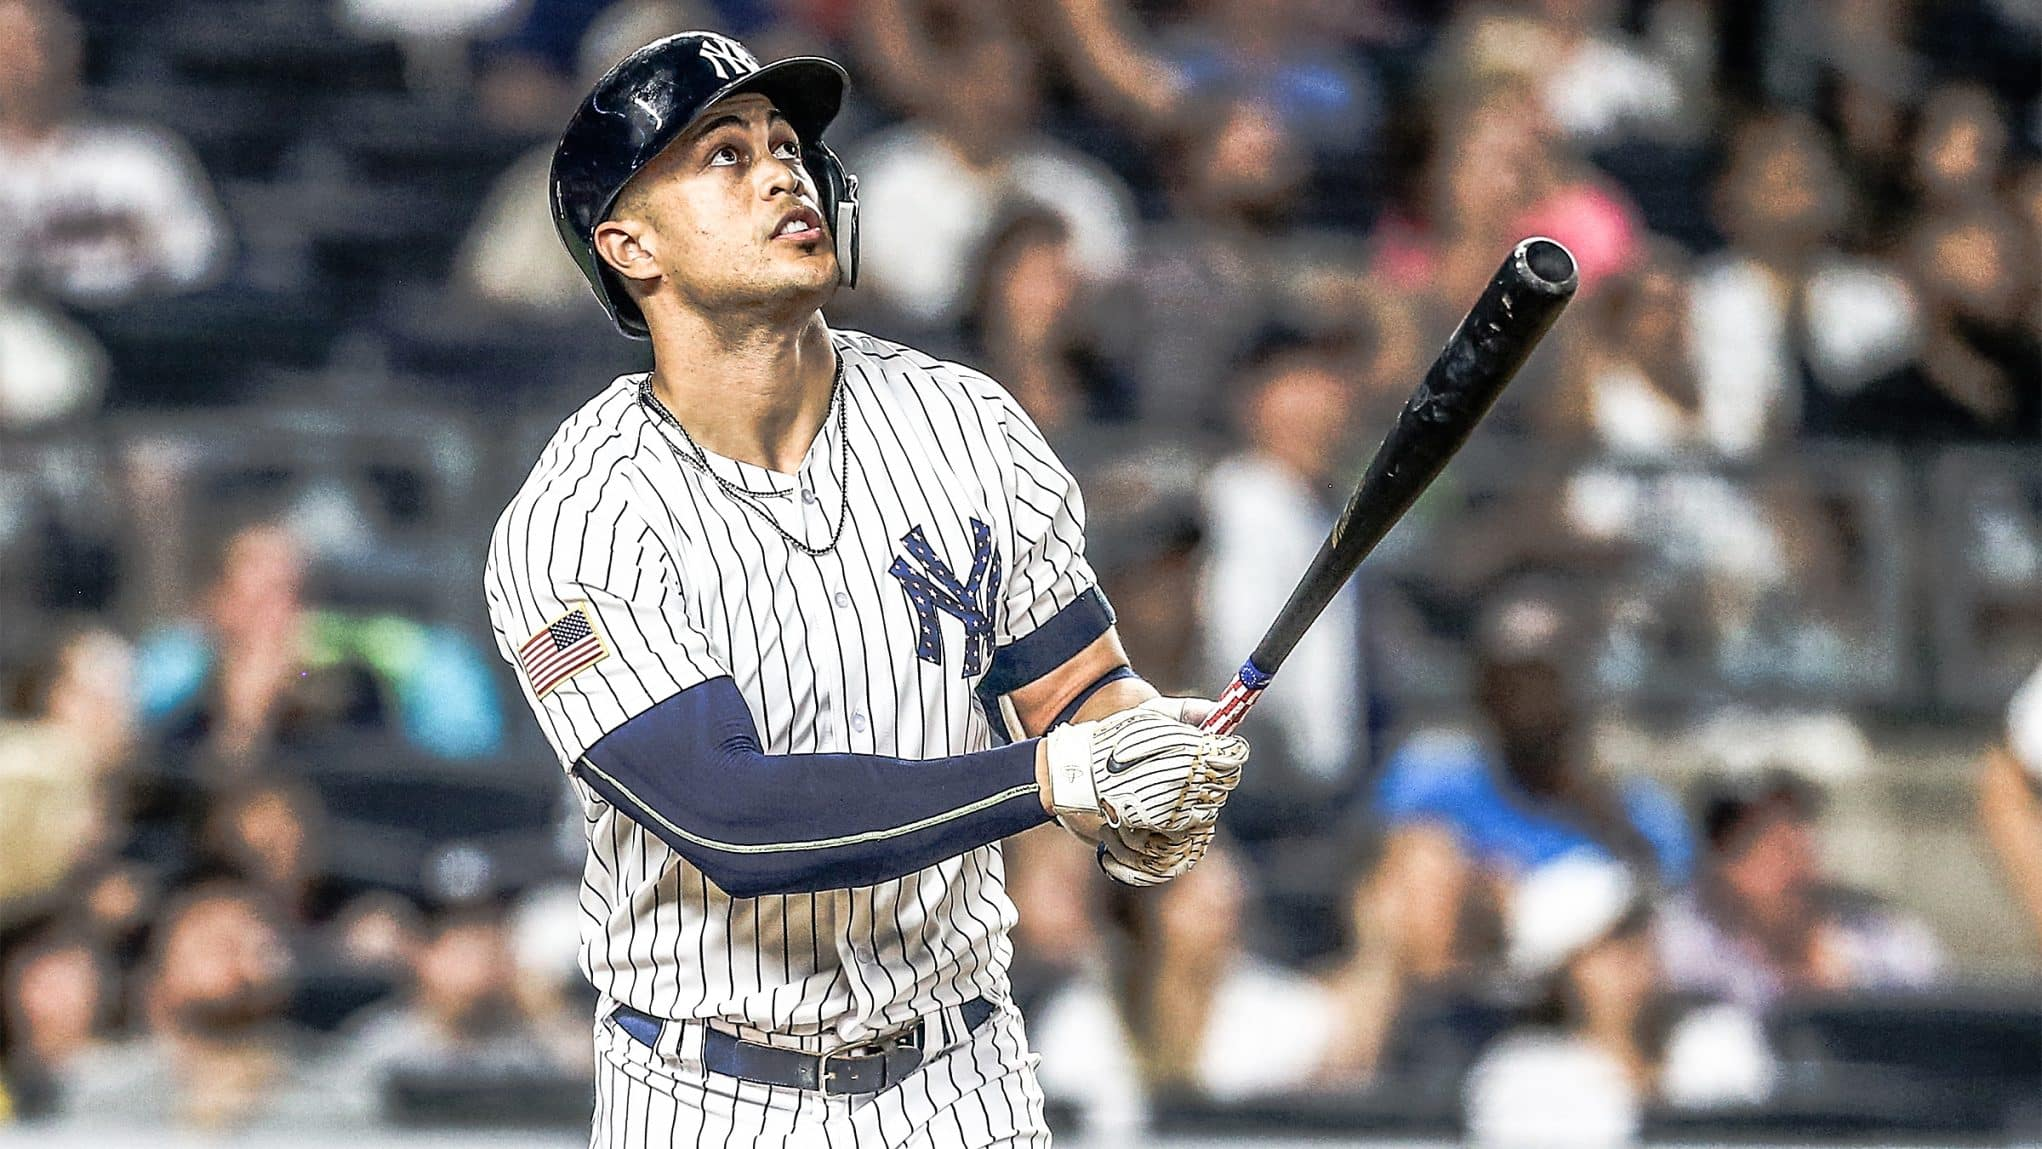 New York Yankees Slugger Giancarlo Stanton Is Poised For A Monstrous